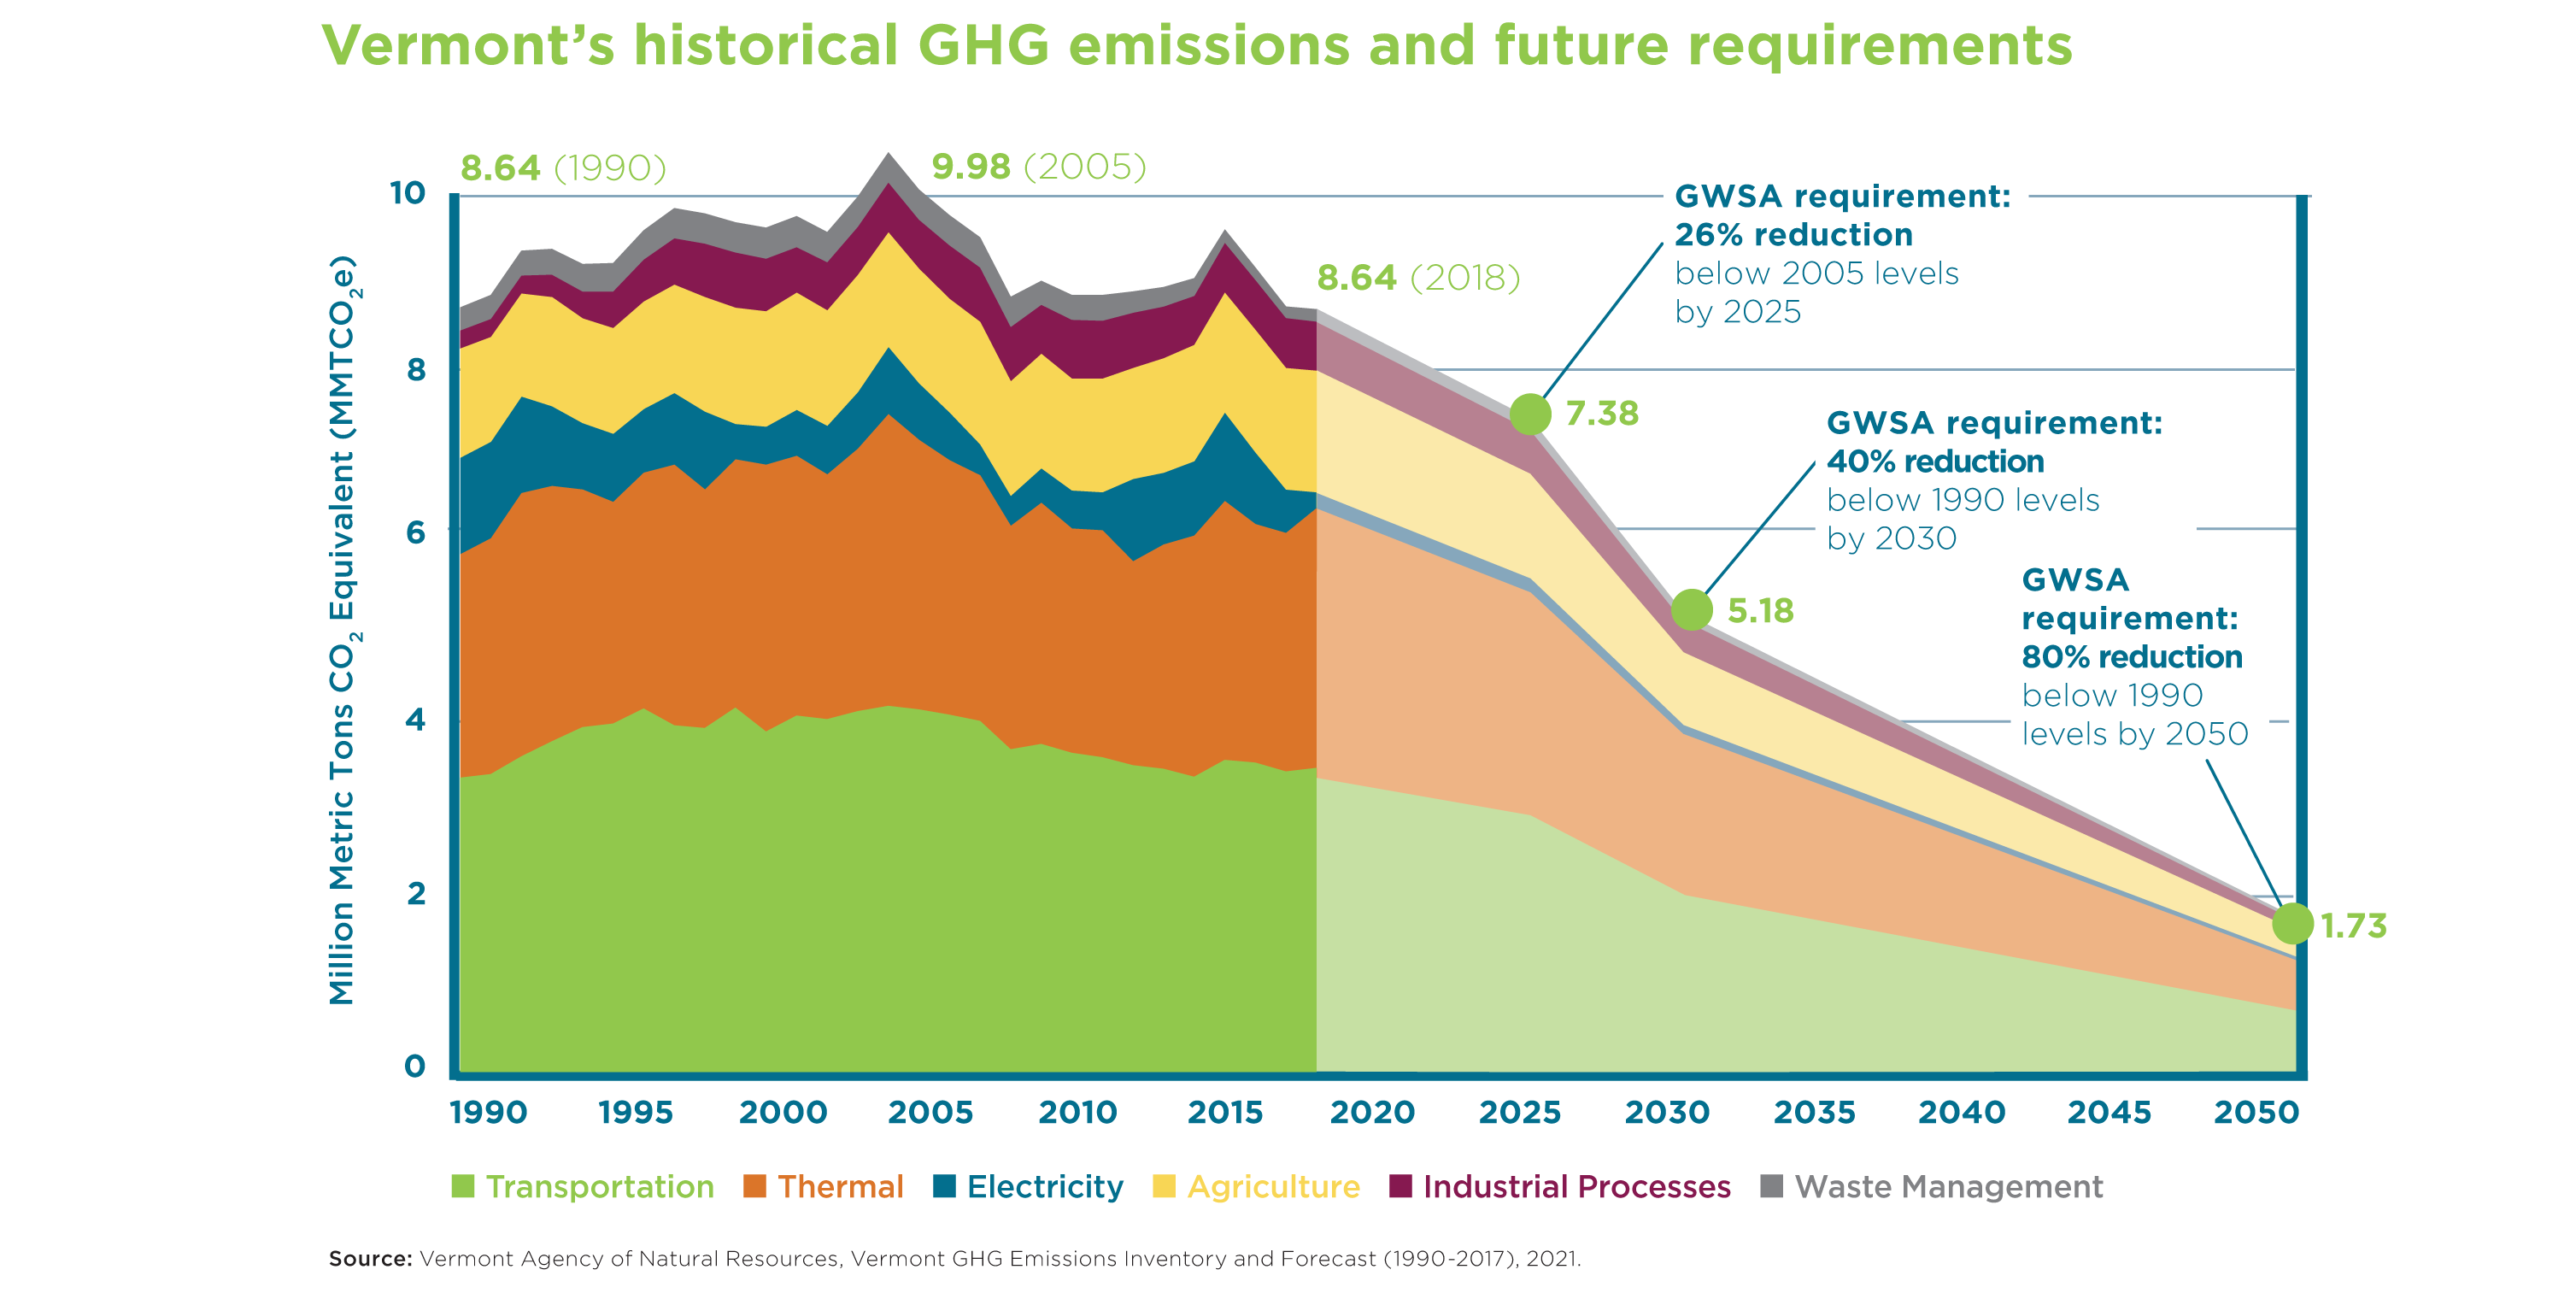 Historic GHG and requirements for slider